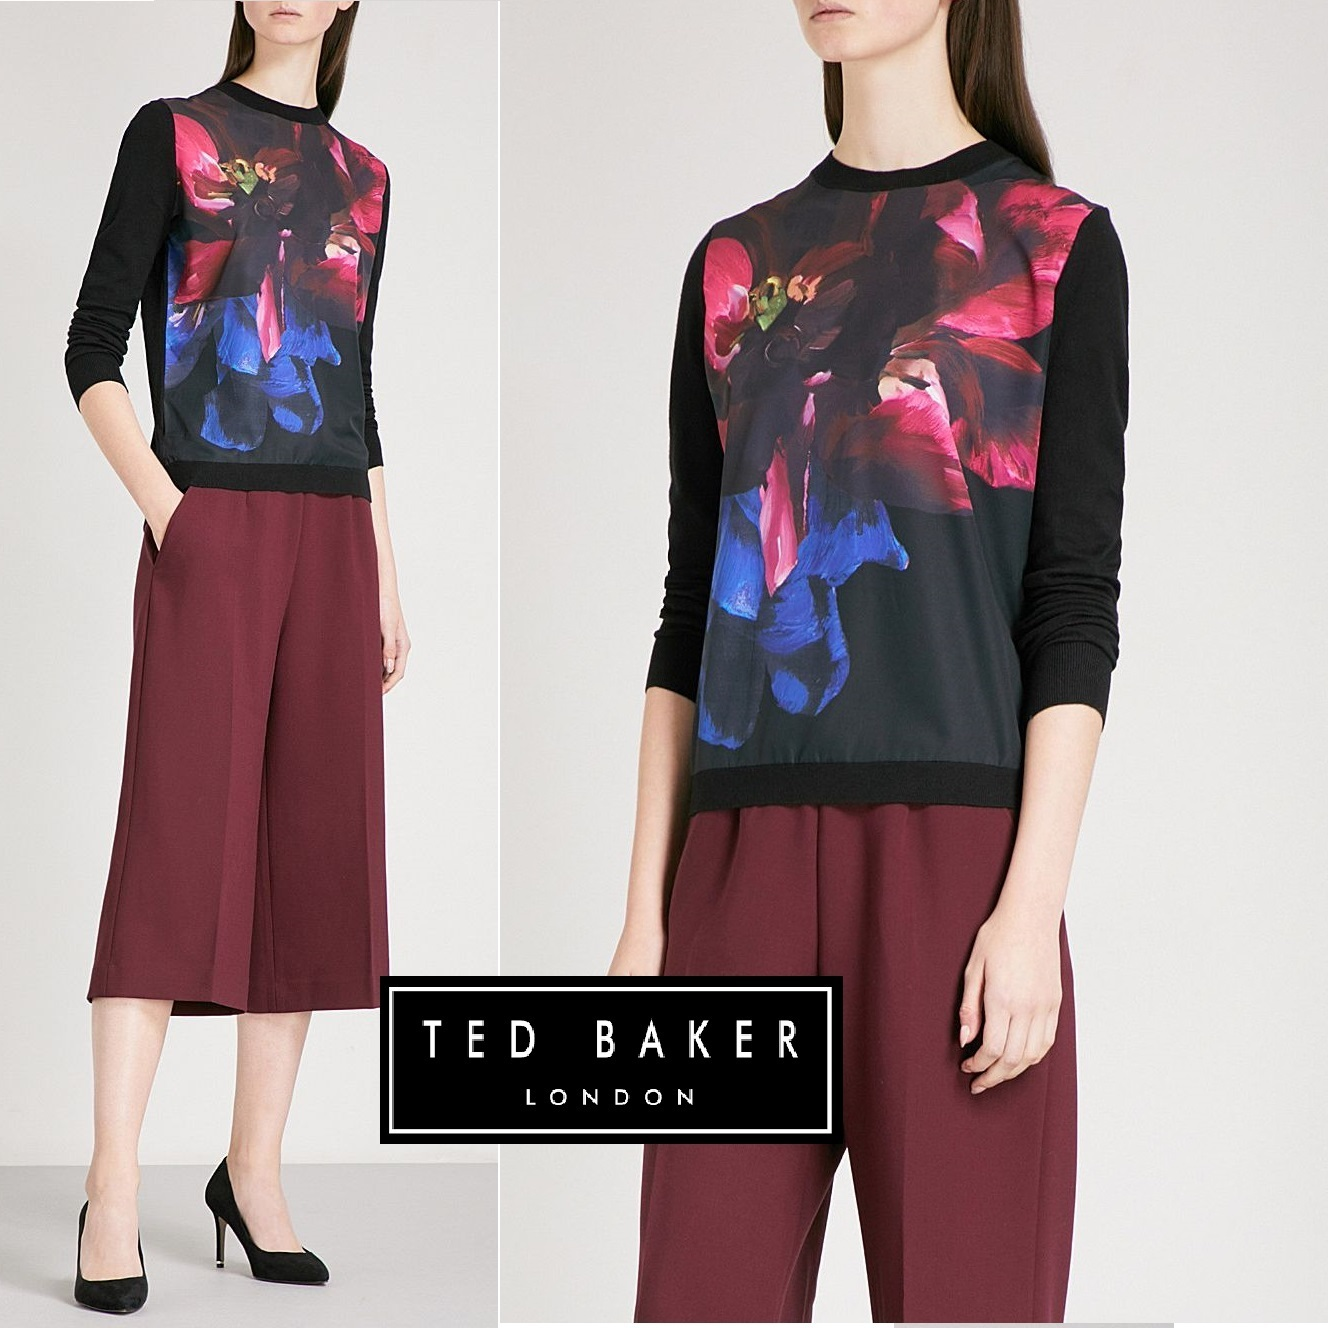 TED BAKER Feodora フローラル柄♪カットソー【関税・送料込み】